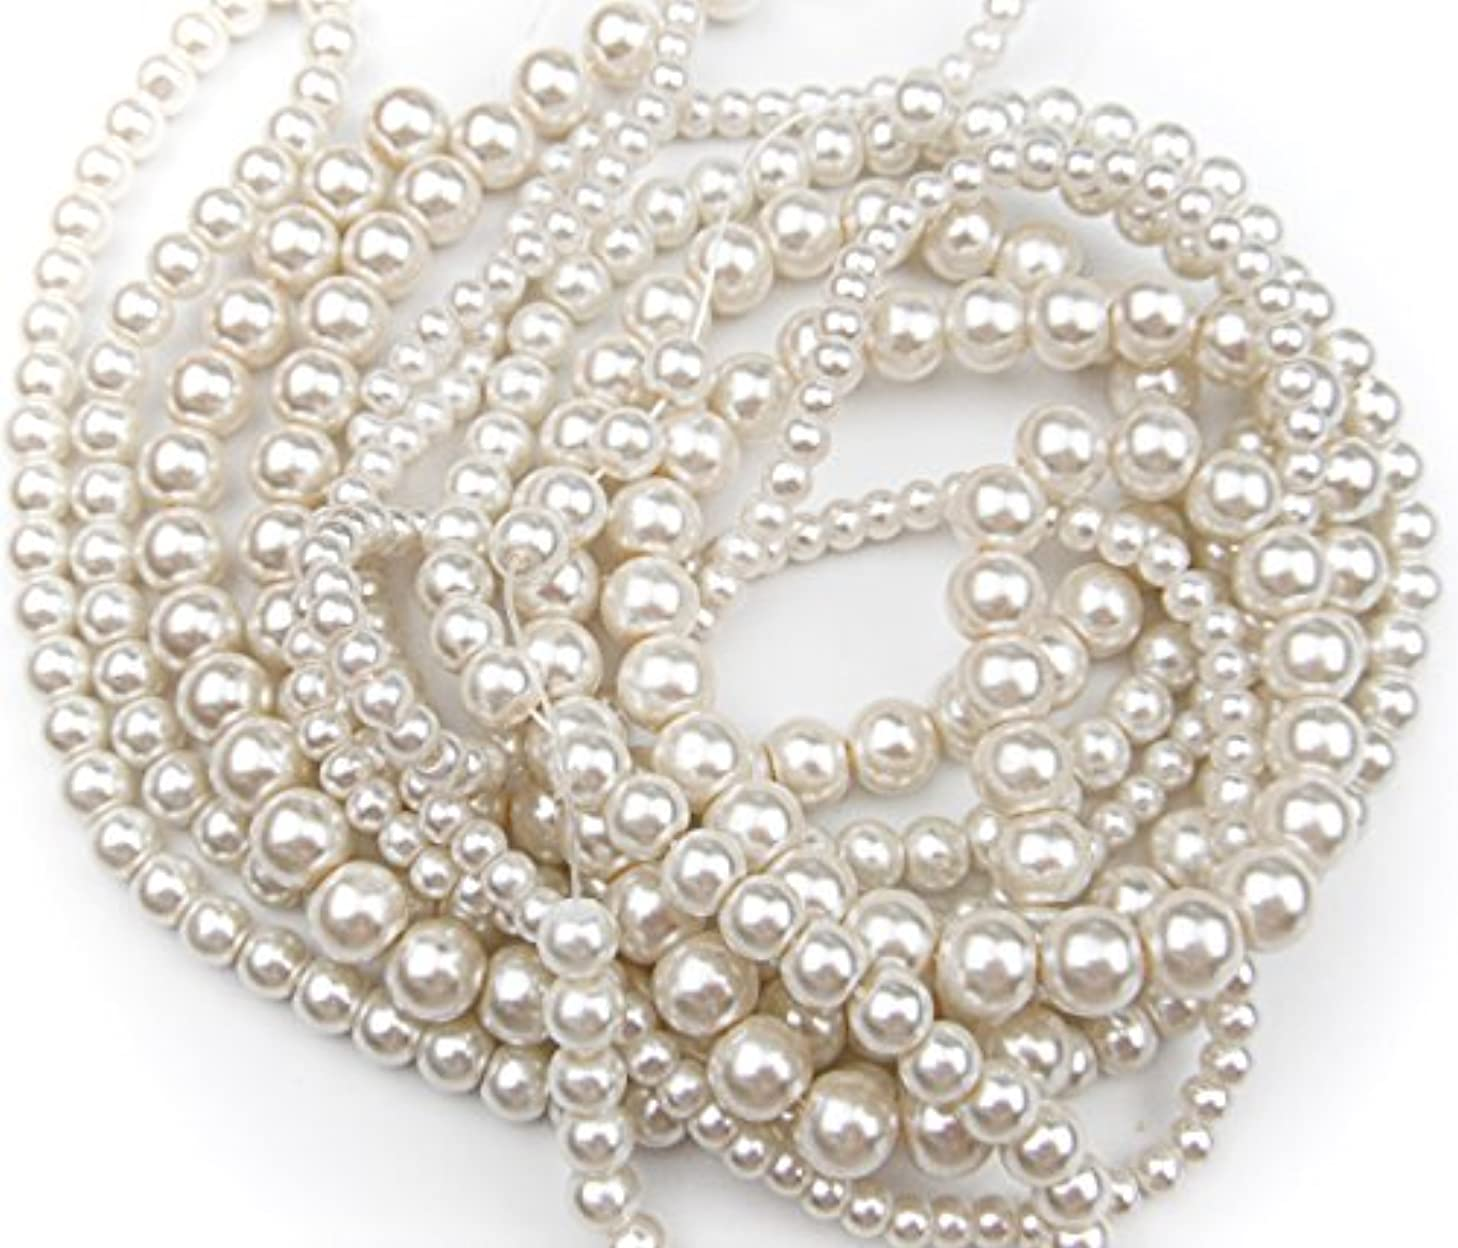 ALL in ONE 3 Strands 380pcs Round Pearl Loose Beads (MIX SIZE, IVORY)